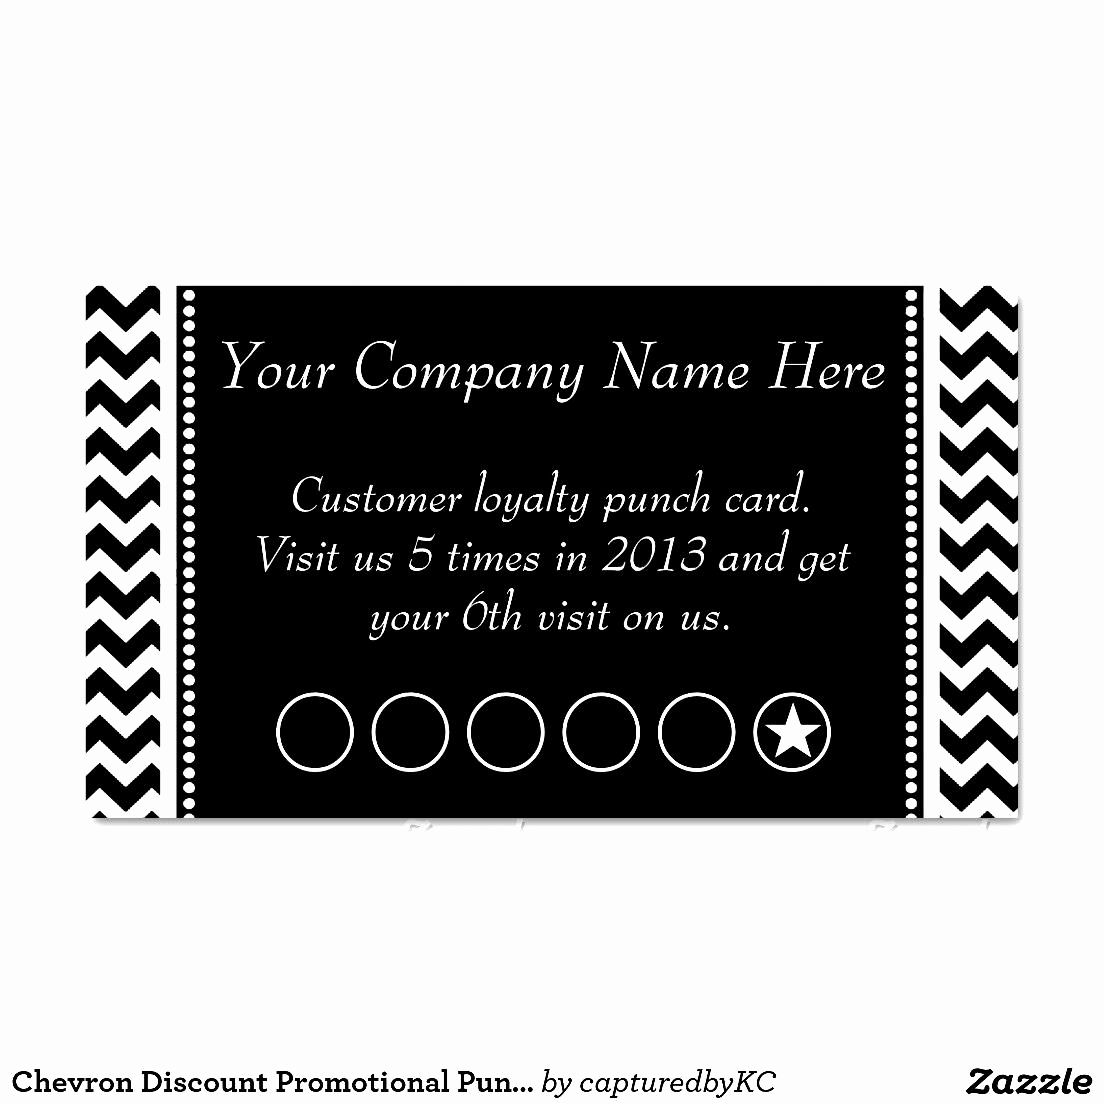 Free Printable Punch Card Template Mult Igry Intended For Business Punch Card Template Fre Printable Business Cards Loyalty Card Template Card Templates Free